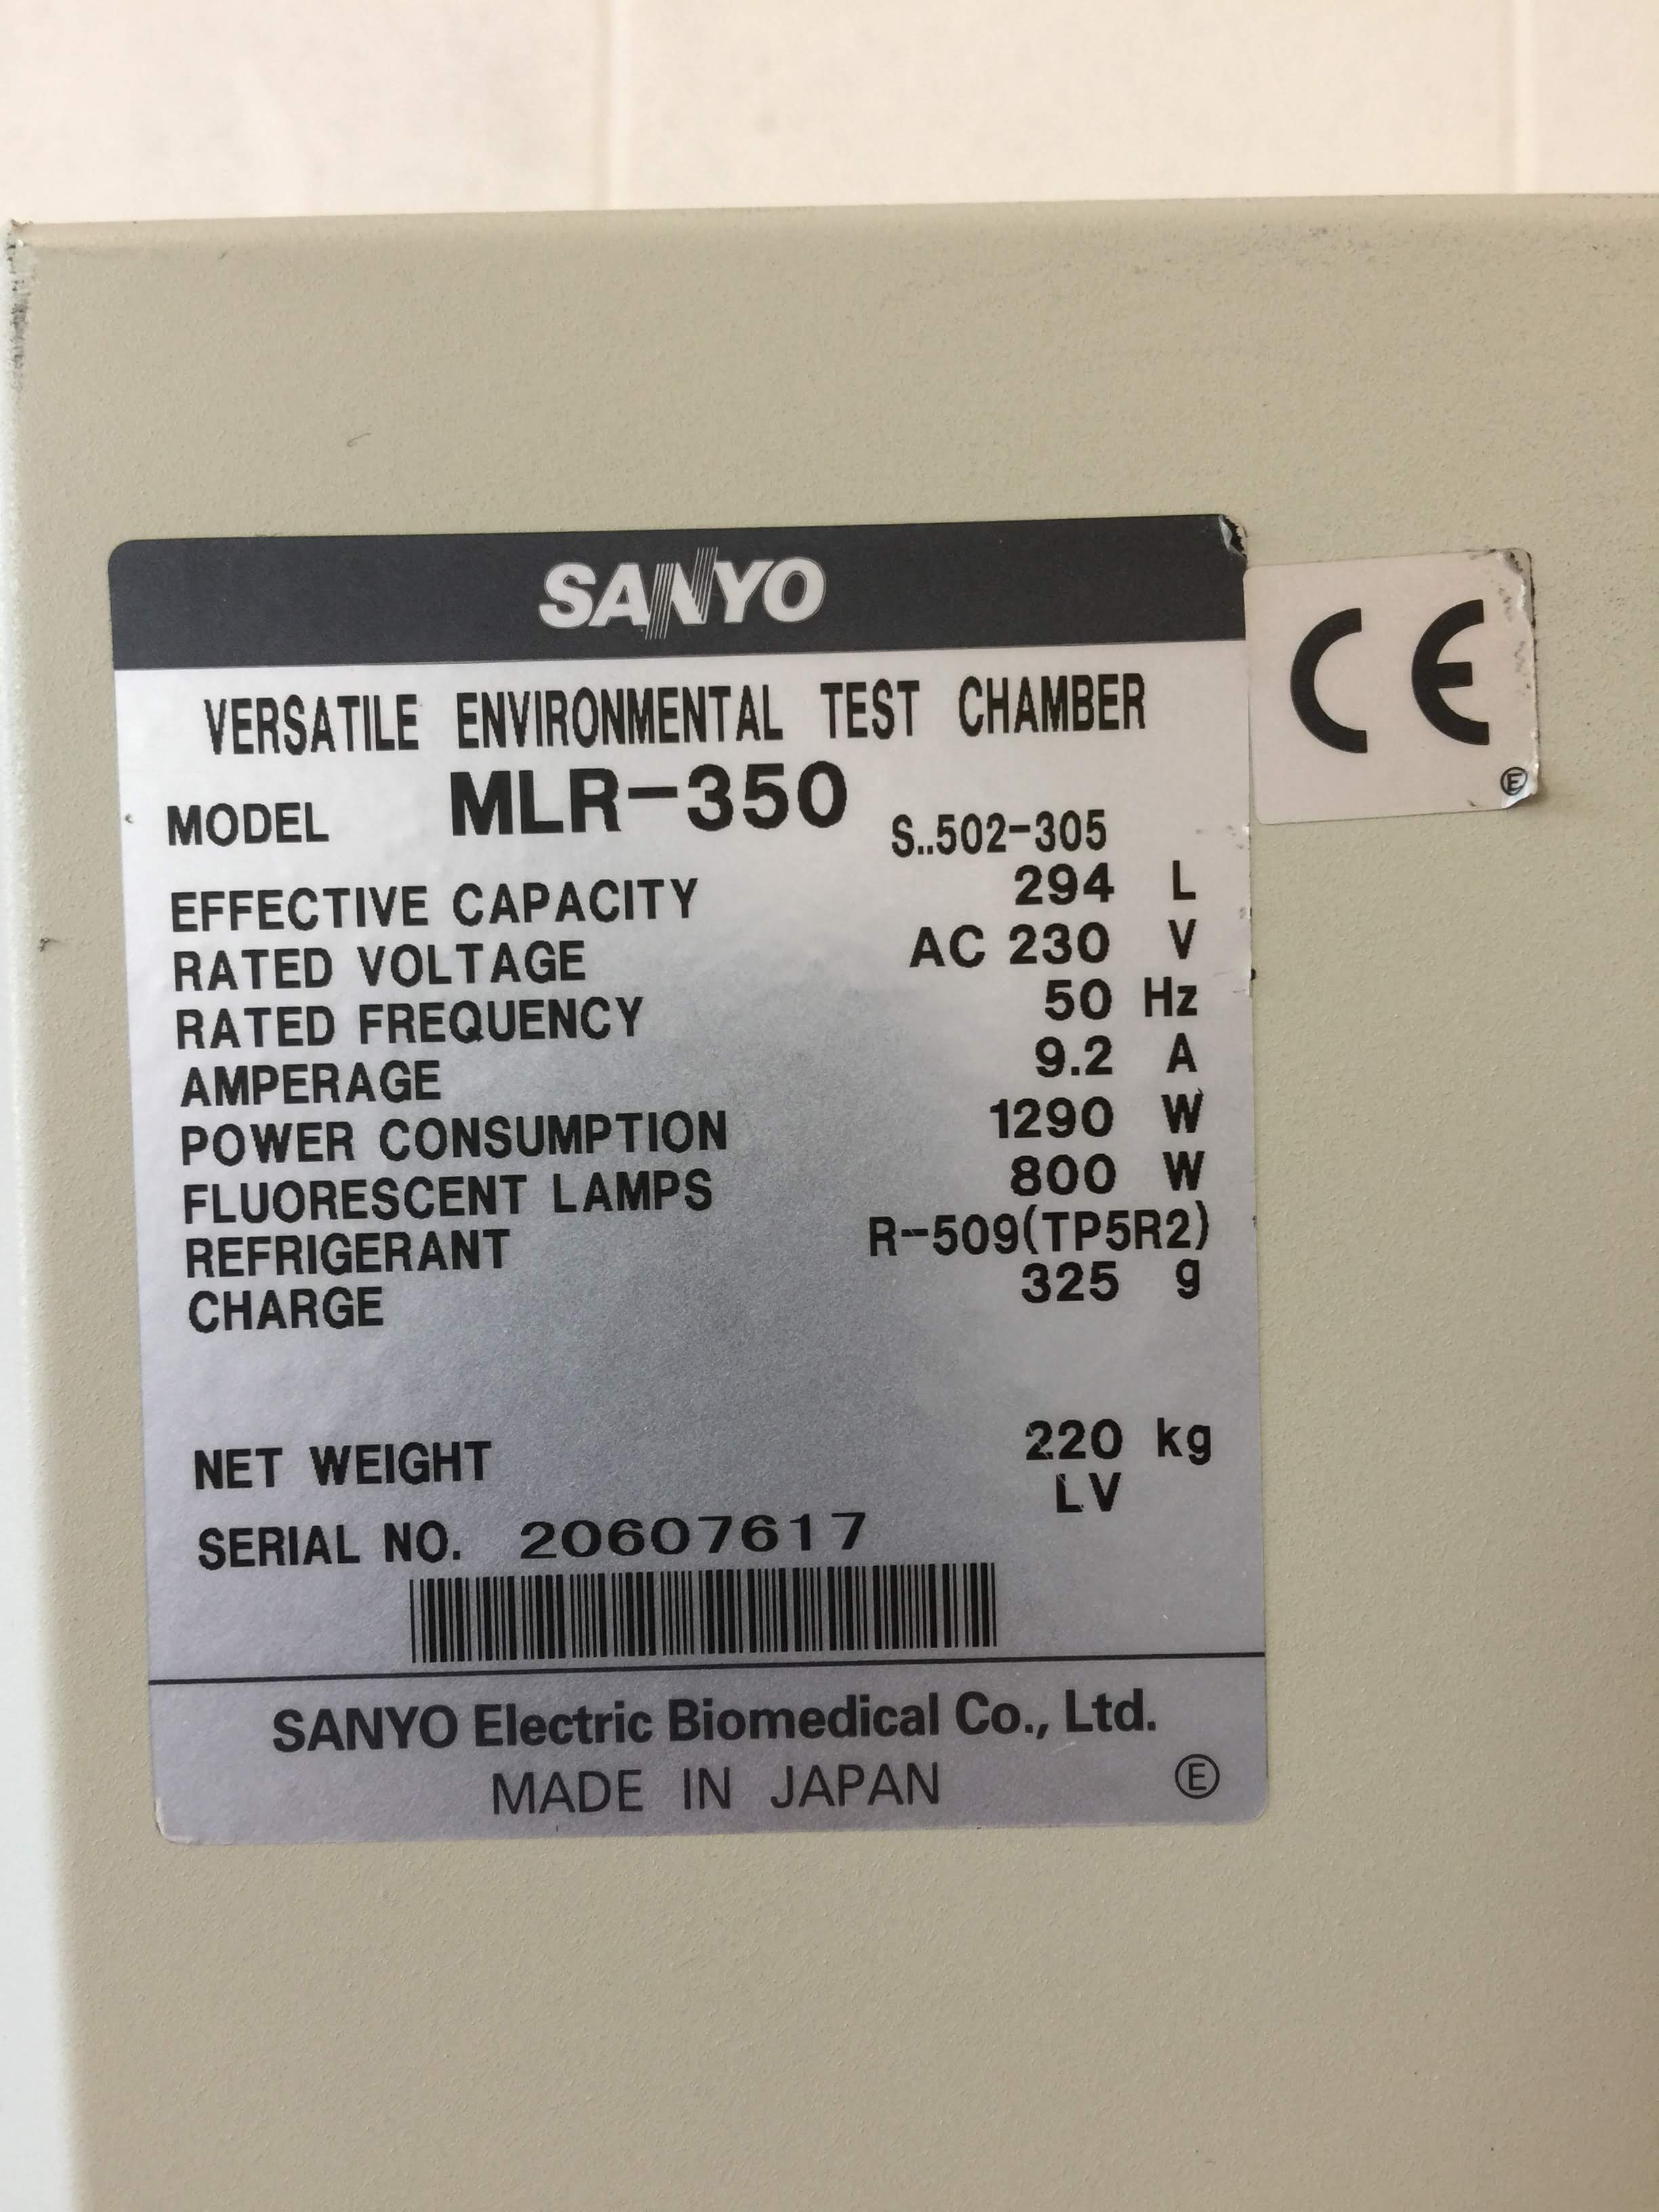 Sanyo Versatile Environmental Test Chamber MLR-350